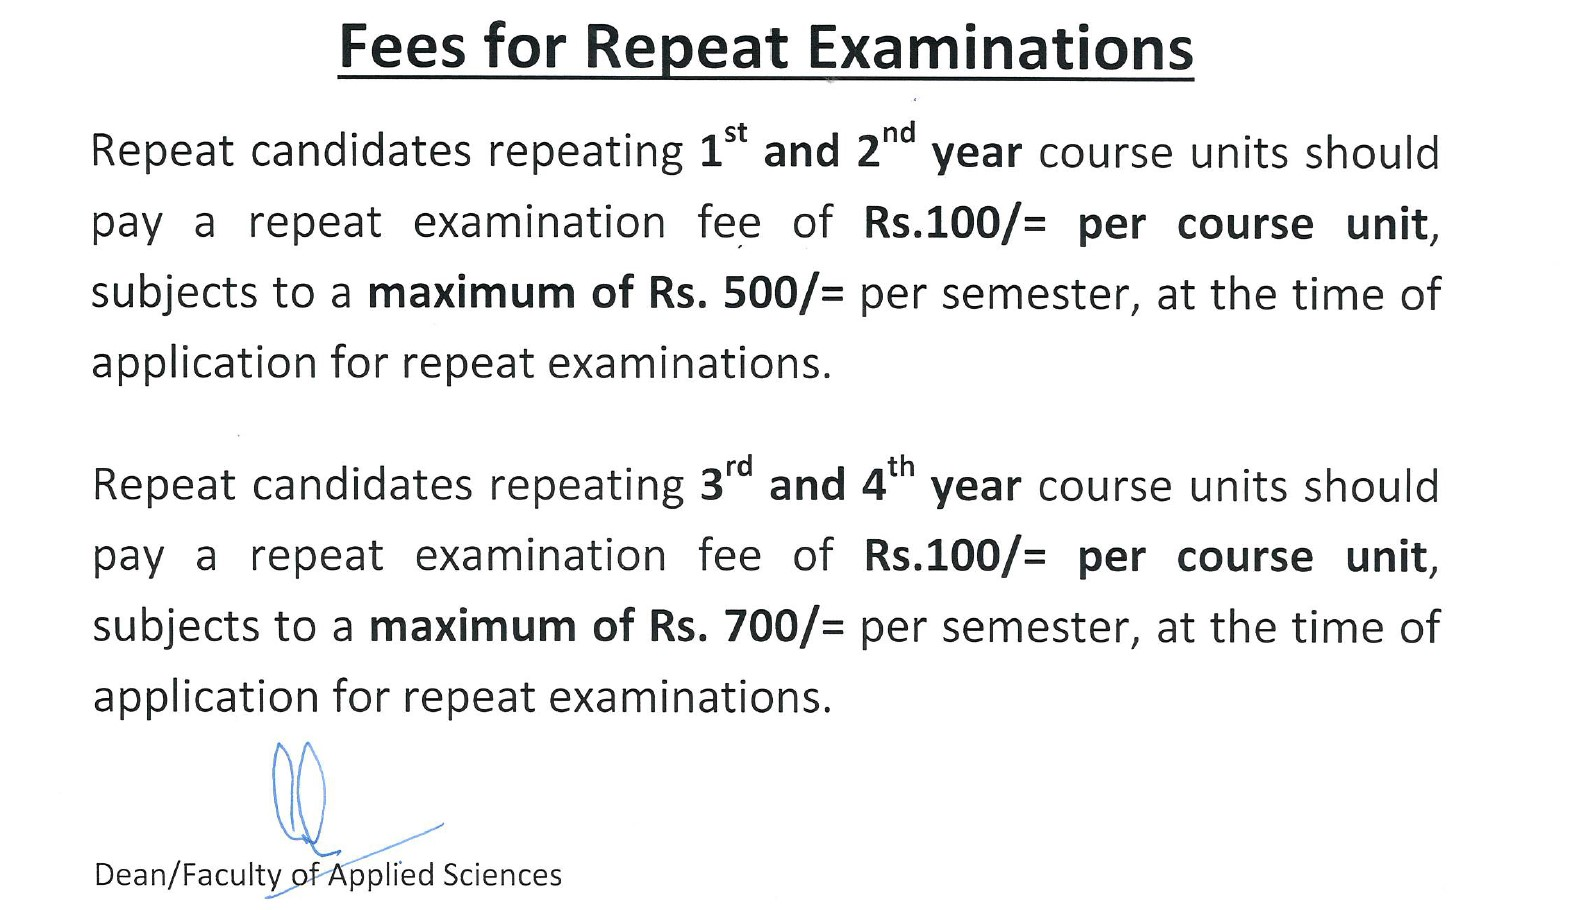 fees for repeat examinations